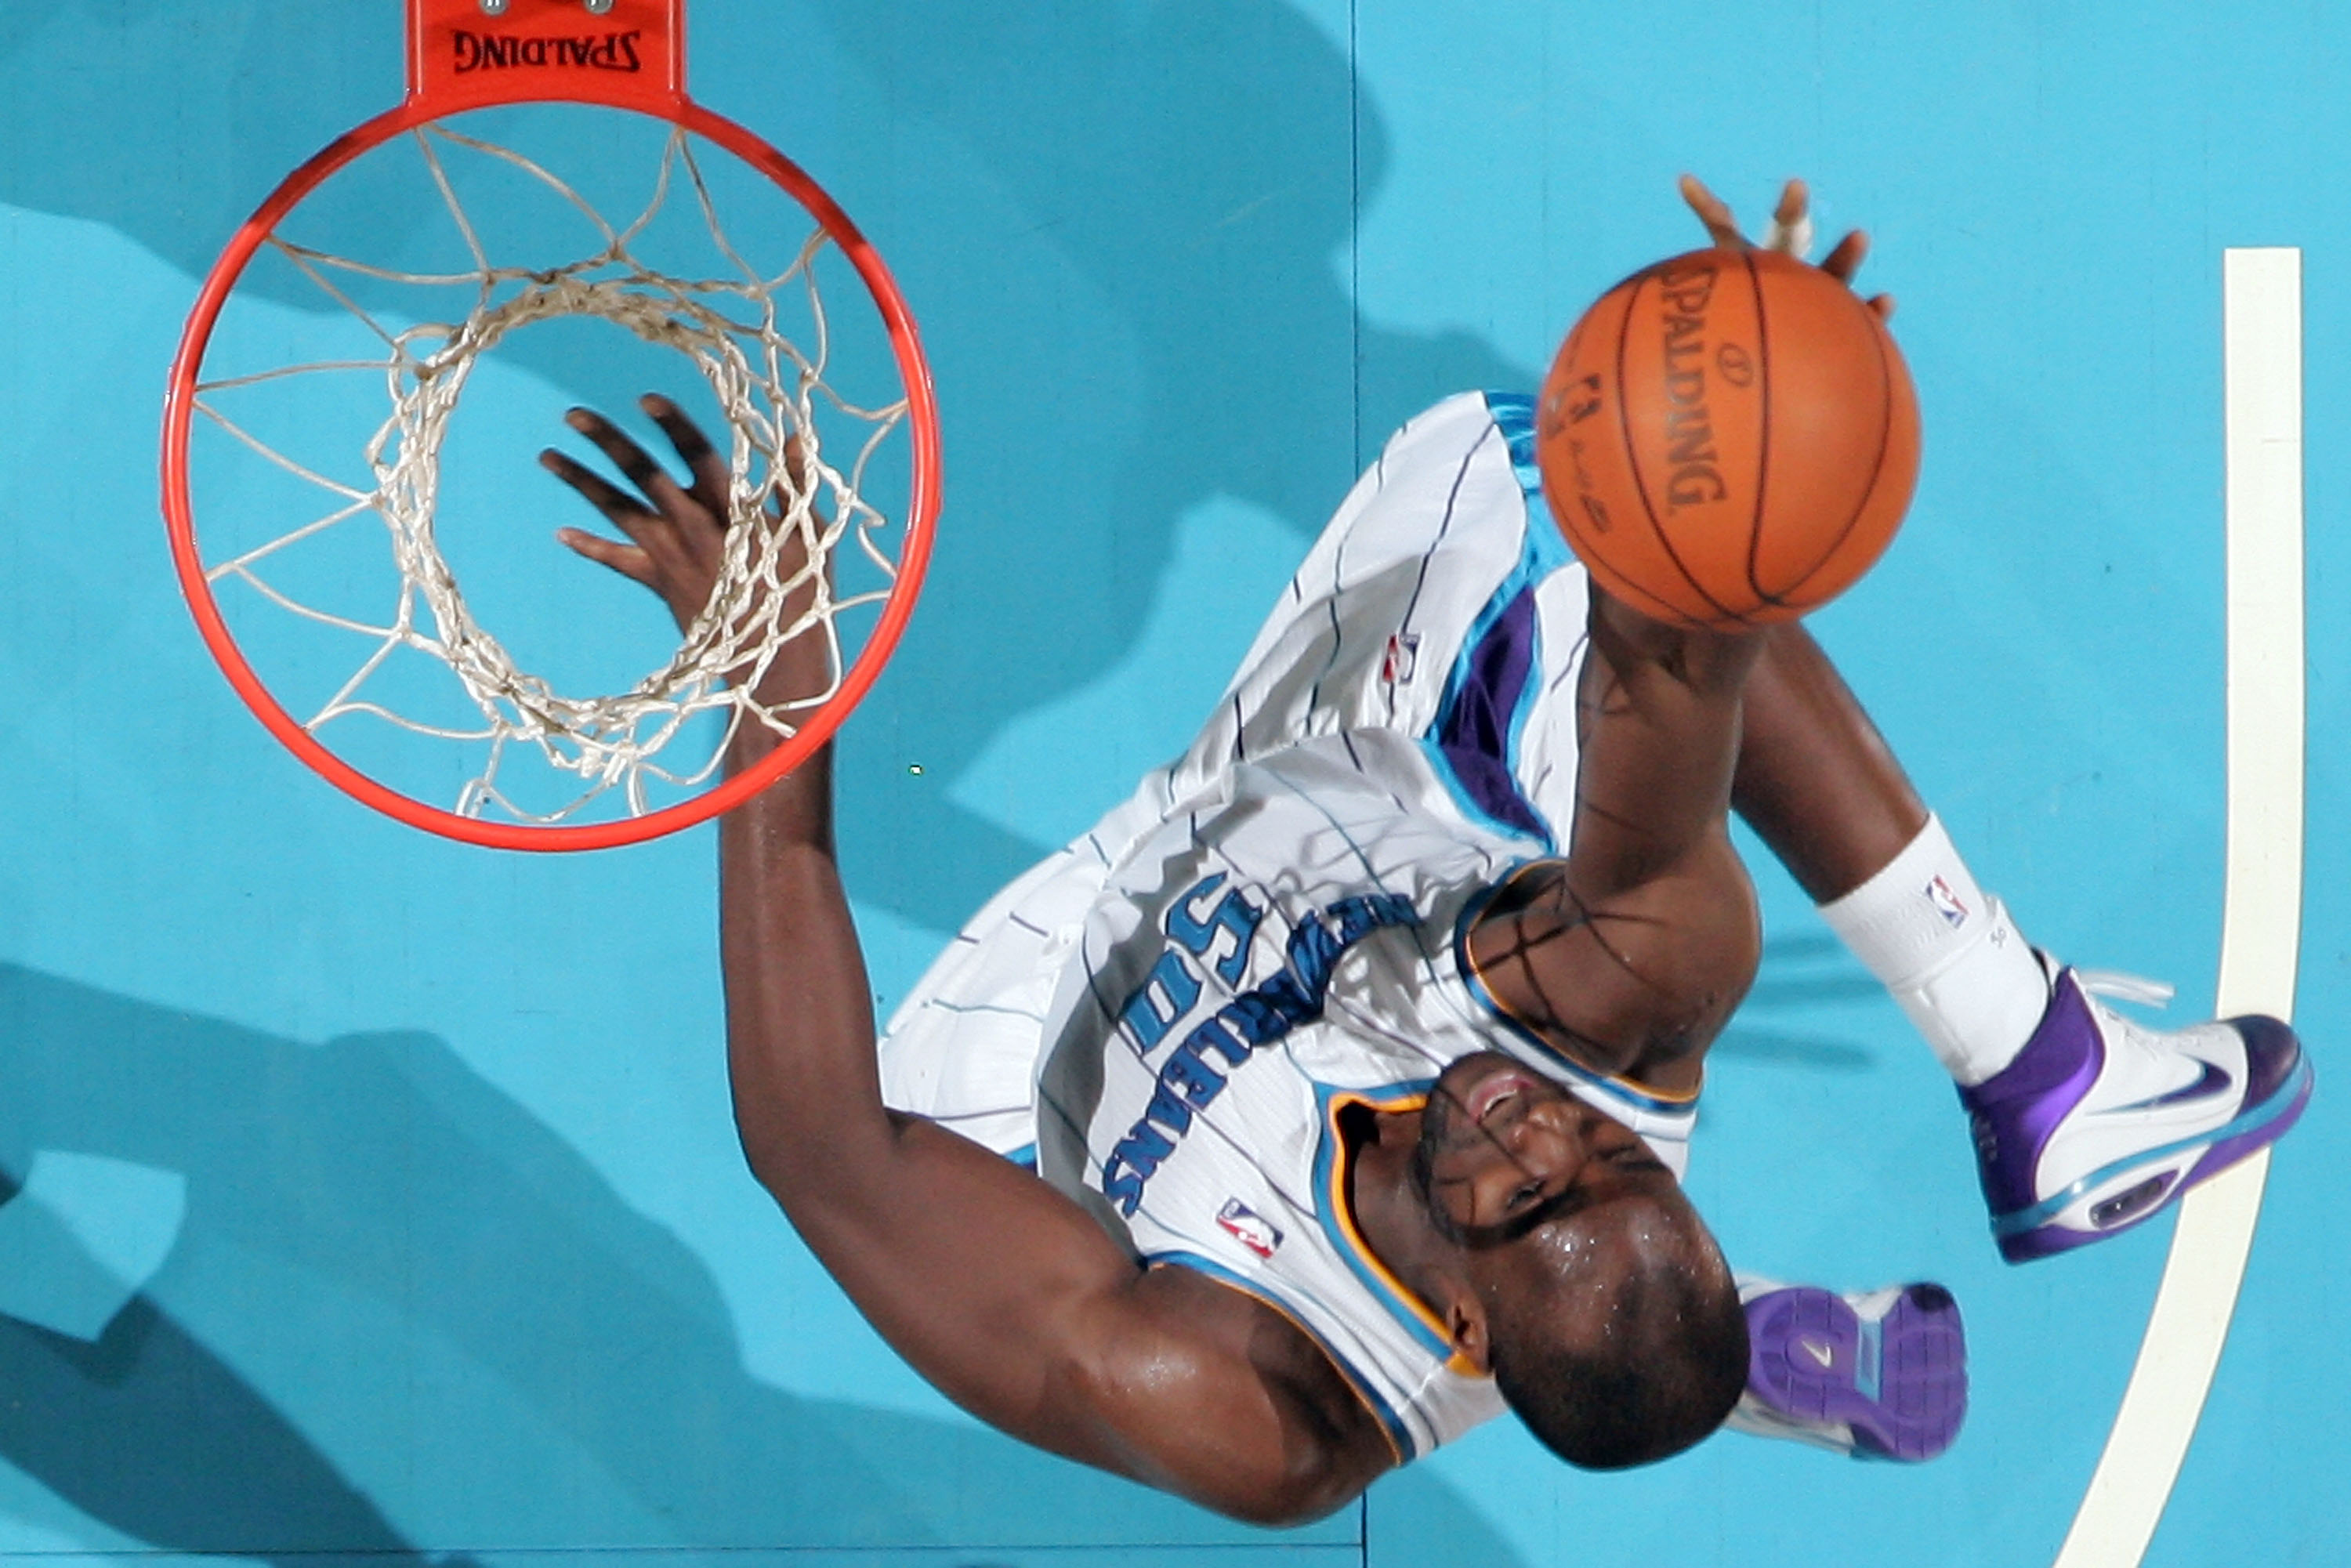 NEW ORLEANS - NOVEMBER 28:  Emeka Okafor #50 of the New Orleans Hornets makes a layup during the game against the San Antonio Spurs at the New Orleans Arena on November 28, 2010 in New Orleans, Louisiana.  NOTE TO USER: User expressly acknowledges and agr